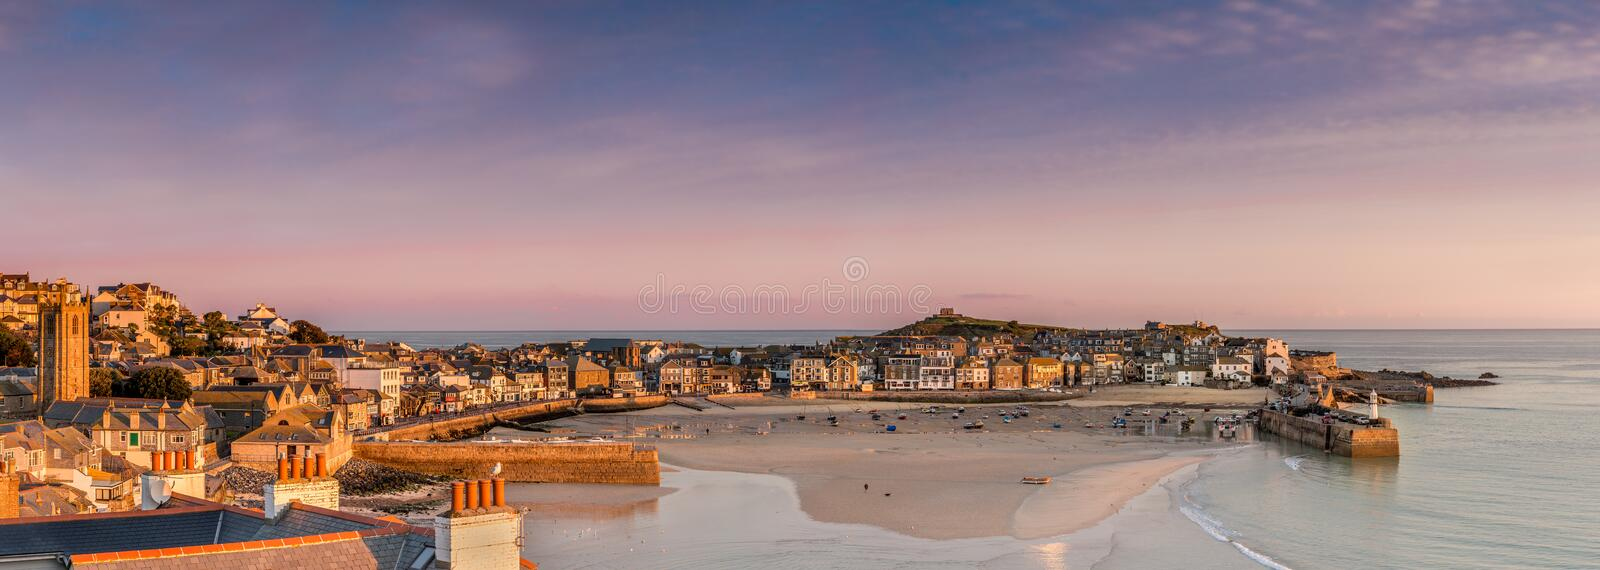 First Light over St Ives Harbour, Cornwall royalty free stock image